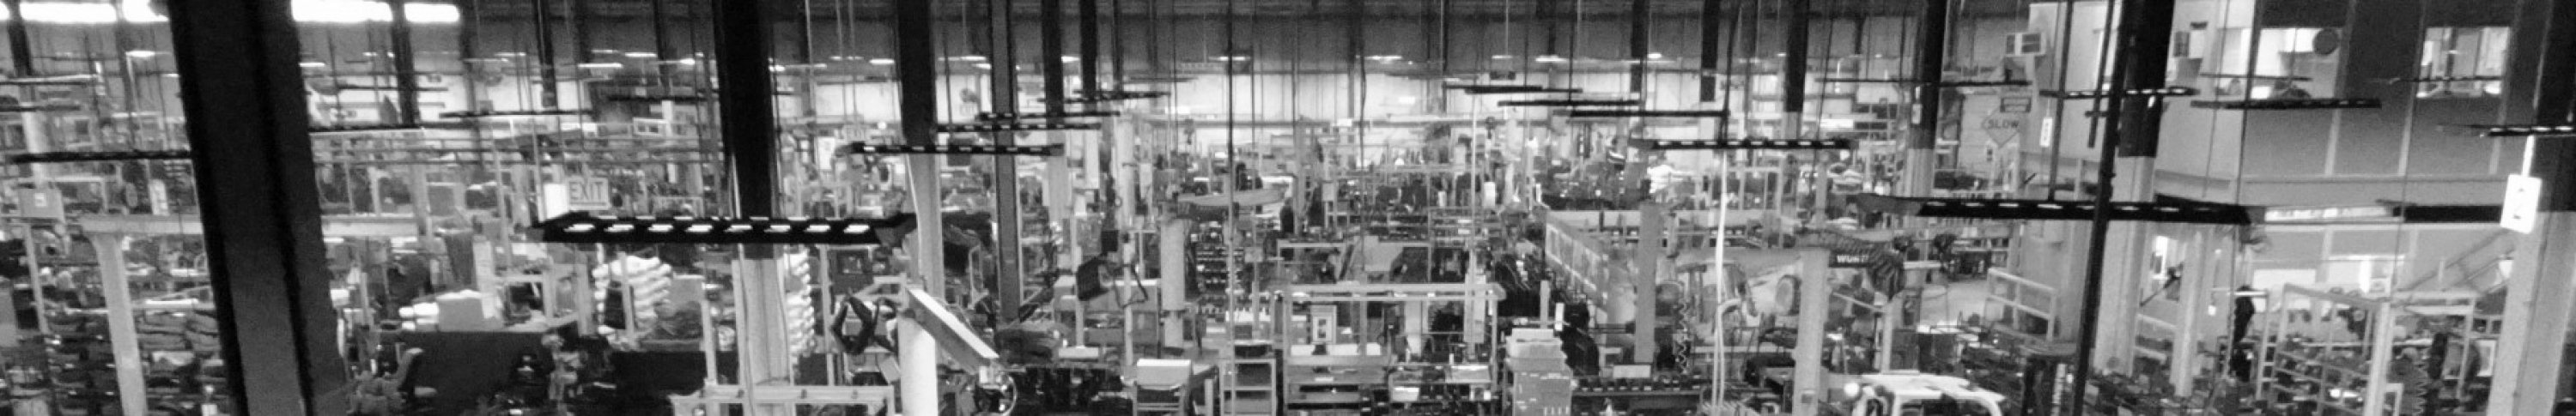 Sears Seating Factory